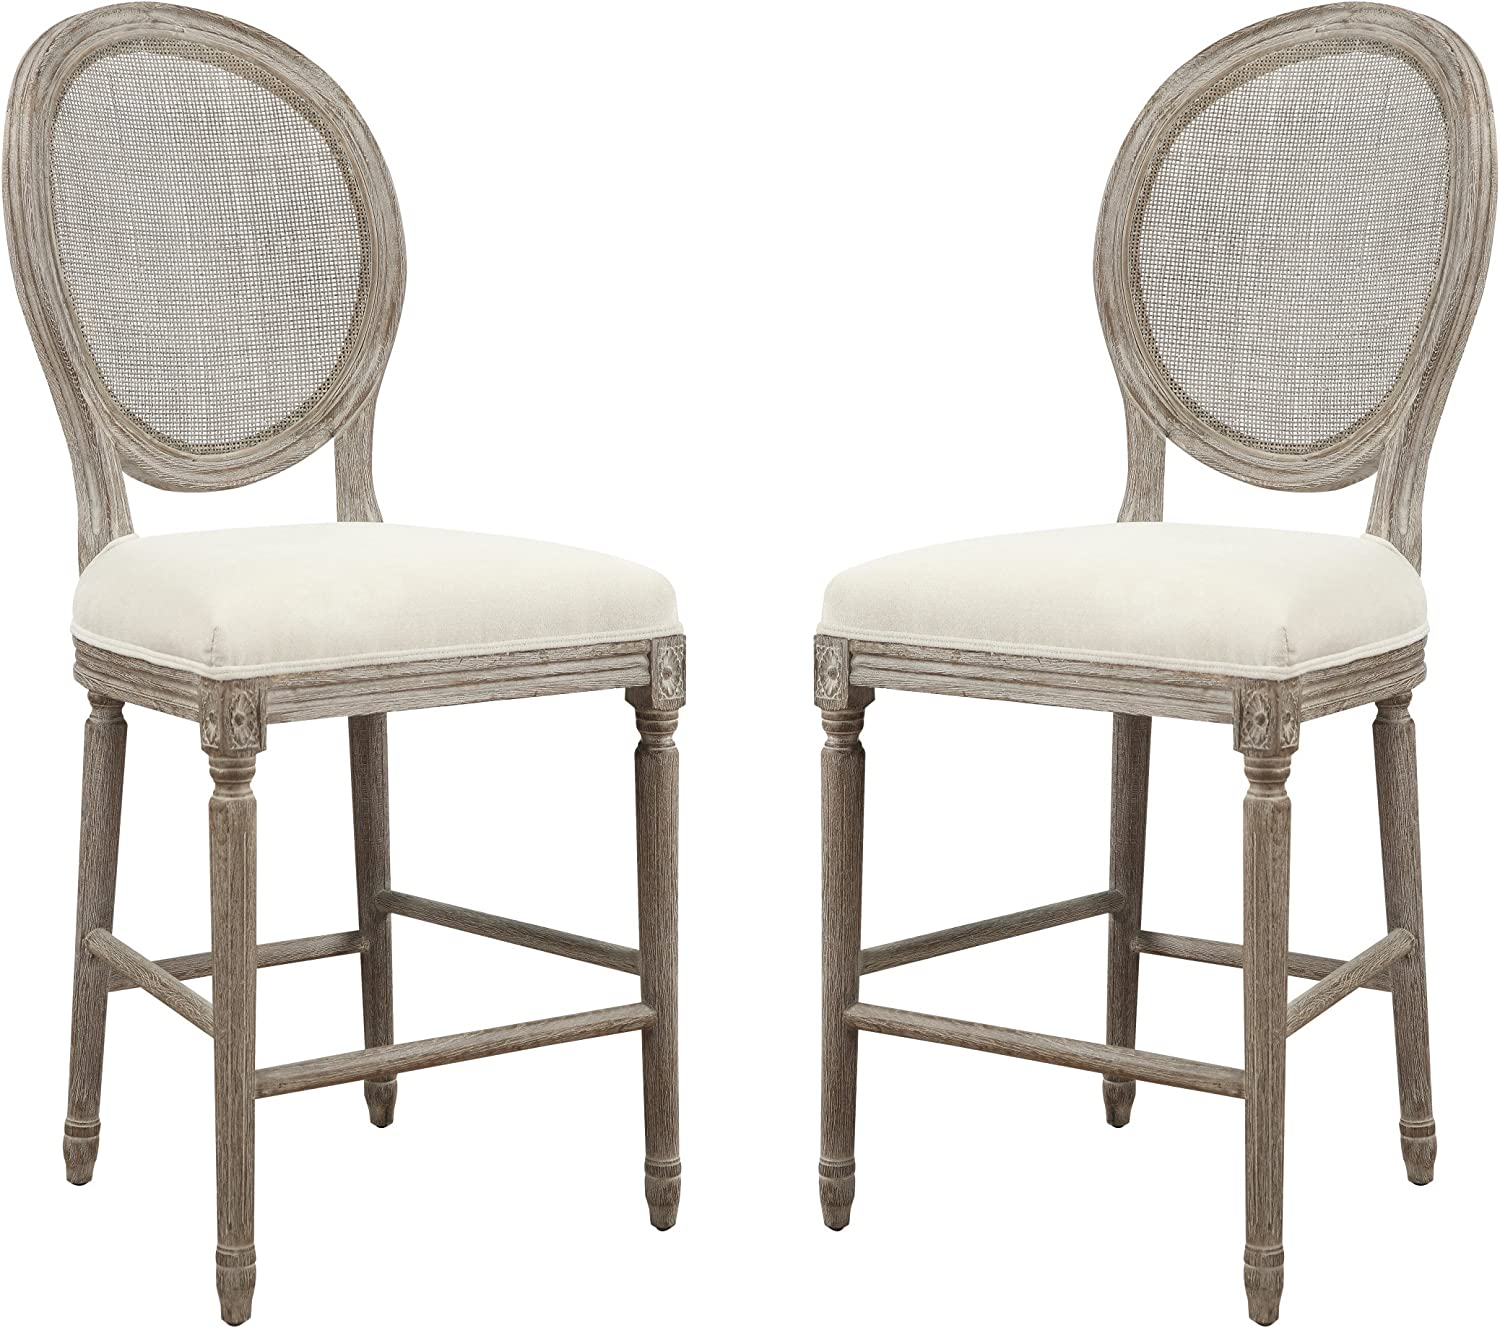 Emerald Home Salerno Sand Gray 24 Bar Stool with Upholstered Seat, Carved Legs, And Rattan Back, Set of Two